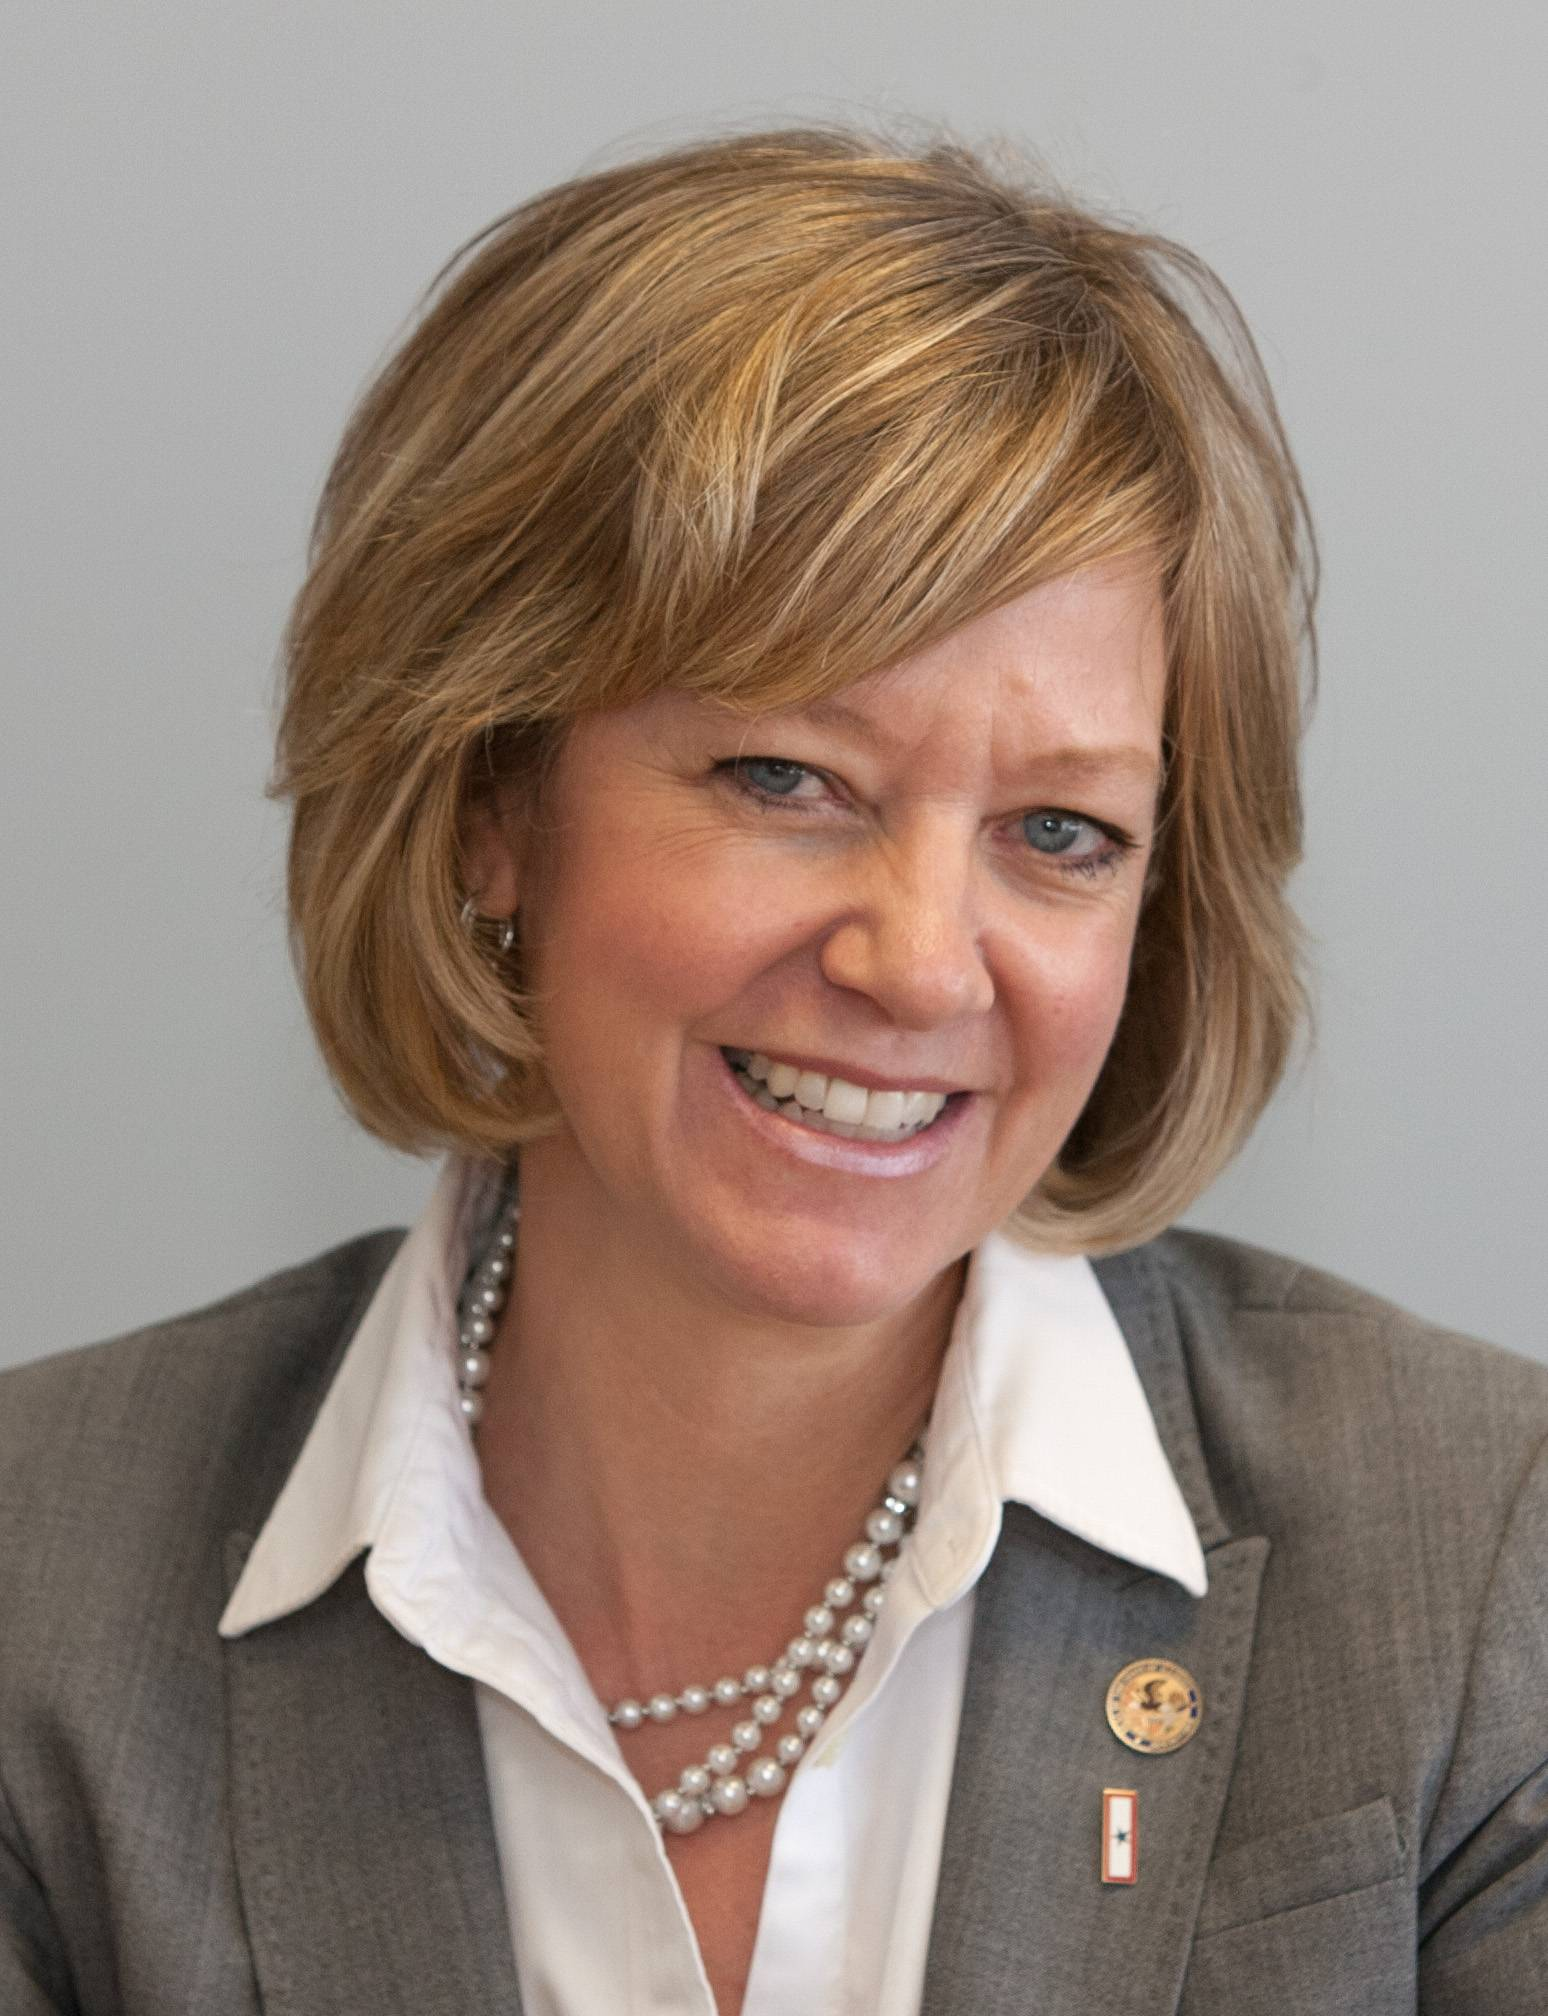 Jeanne Ives